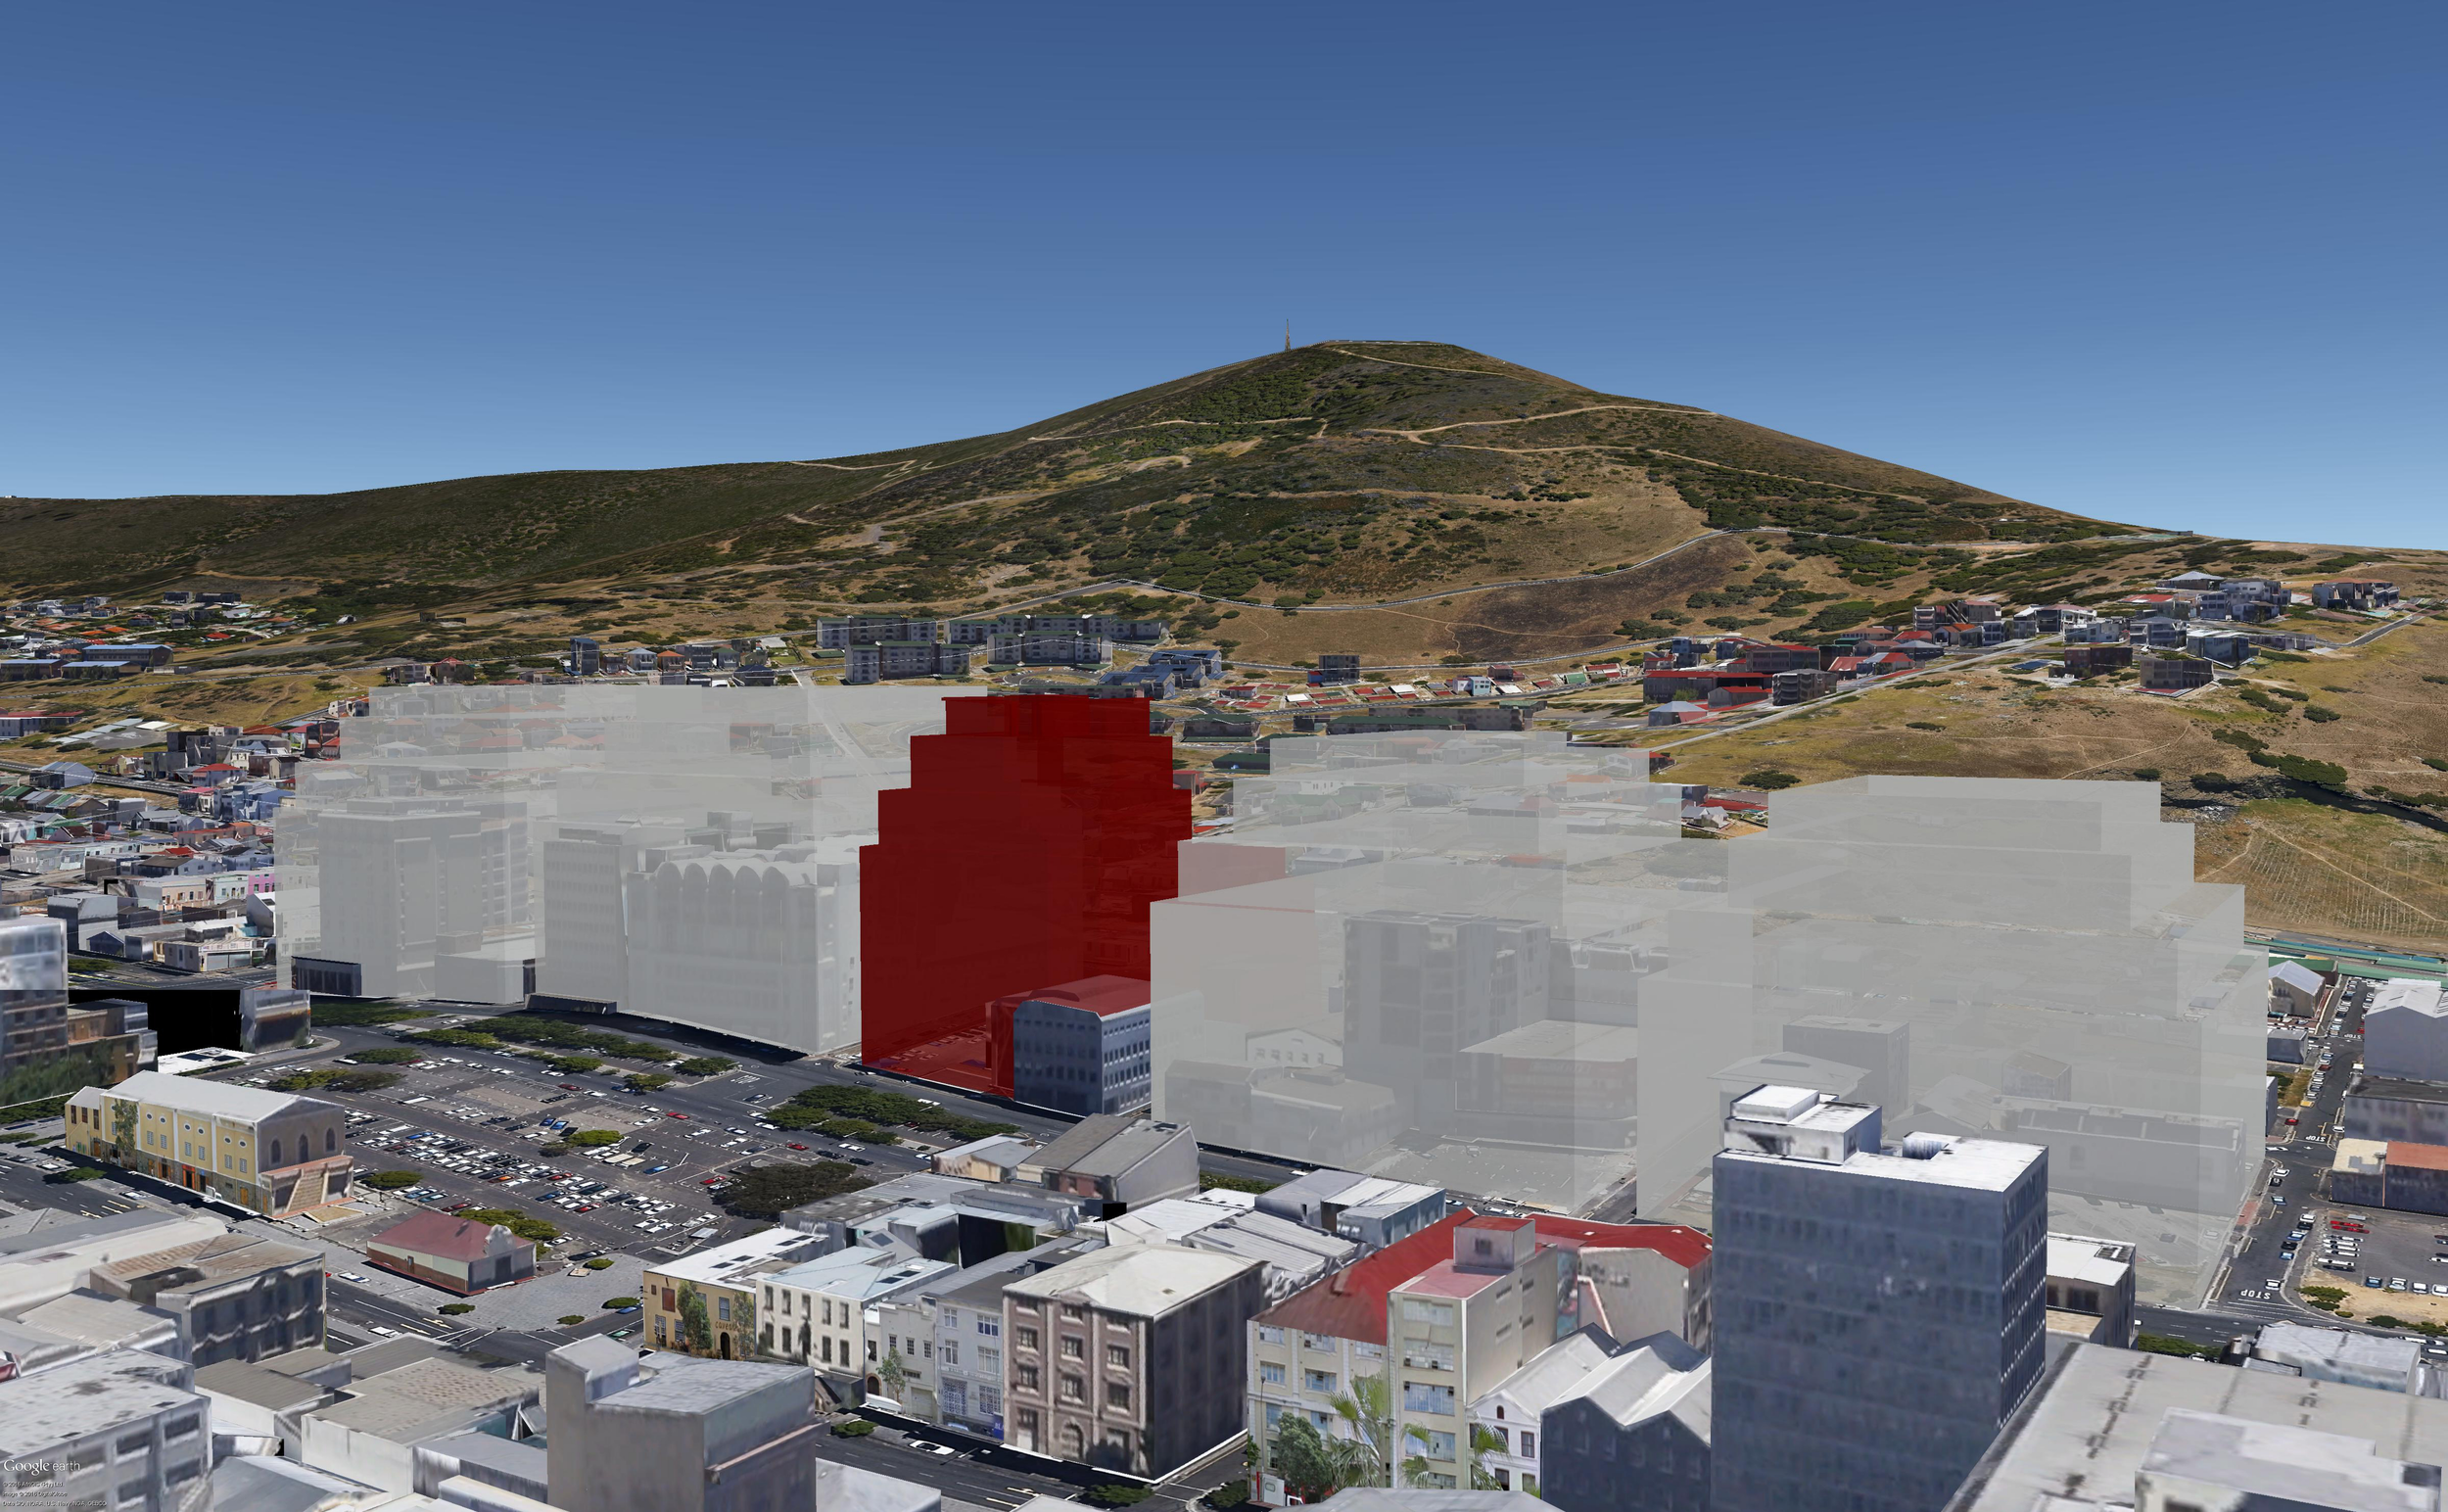 The Municipal Planning Tribunal's irrational and precedent setting decision - effectively giving the green light for a 20-storey wall of MONSTER buildings cutting off the Bo-Kaap from the CBD.